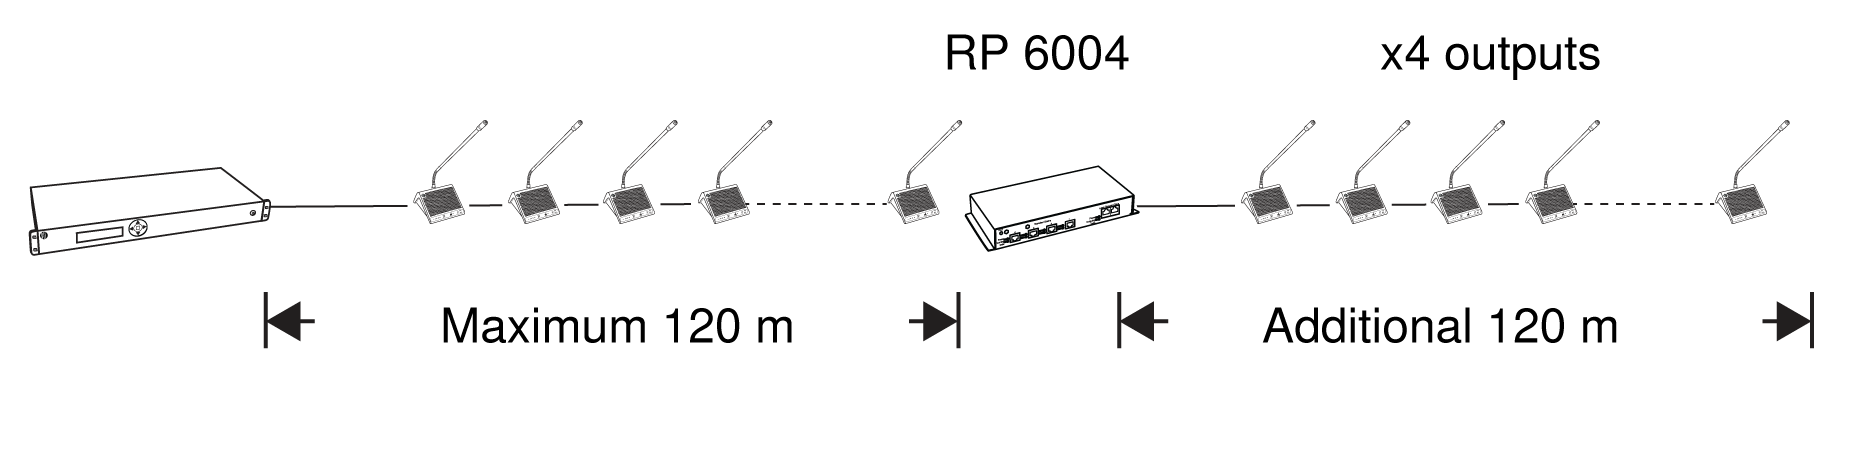 Shure Publications User Guides Dds 5900 Puter System Diagram In Addition On Hardware Block Of Toilet Inline Signal Repeater